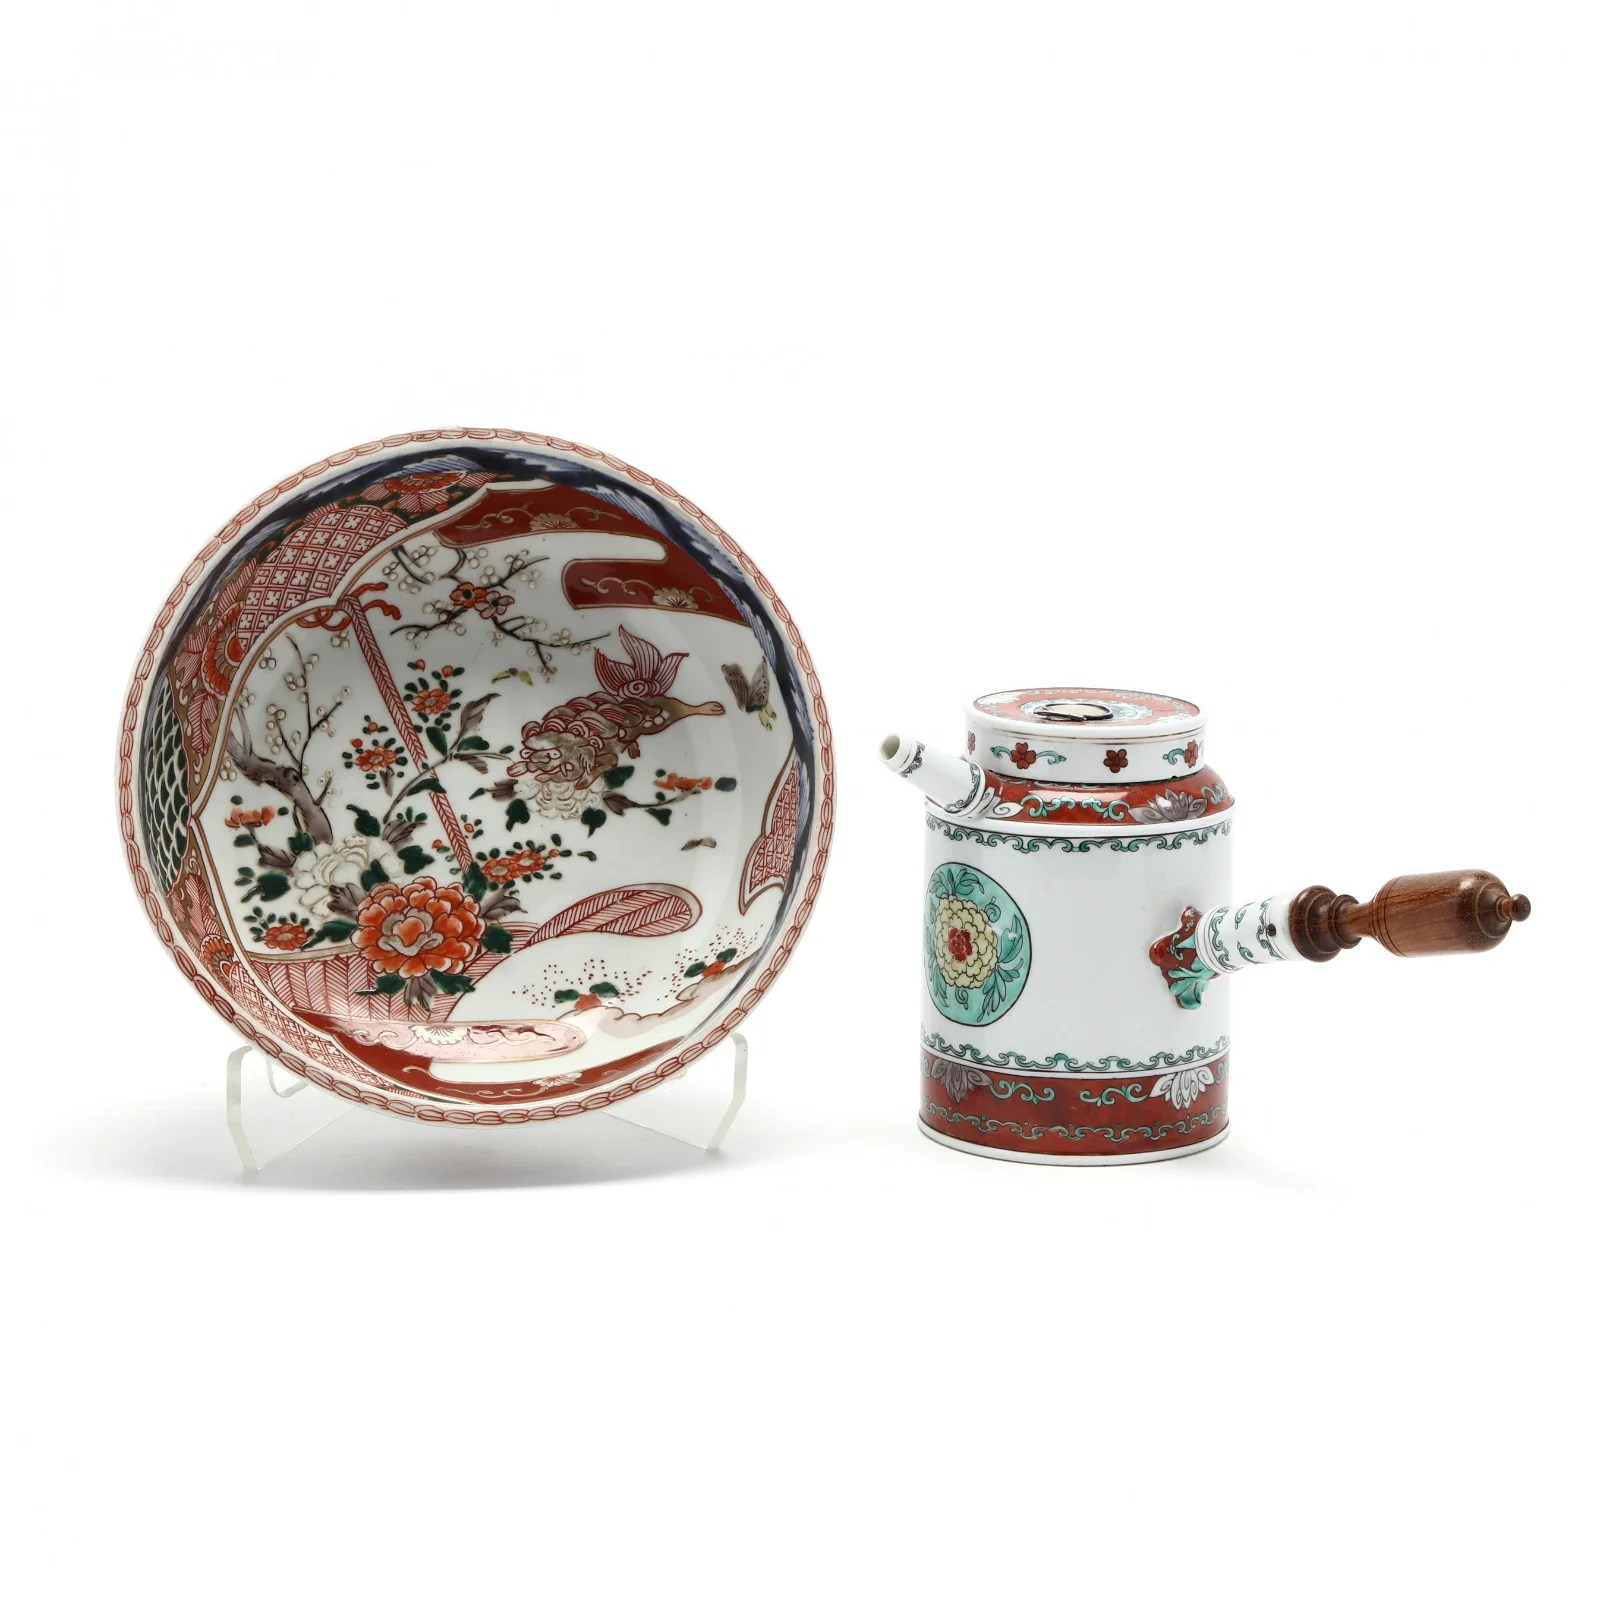 A Chinese Coffee Pot and Japanese Imari Bowl